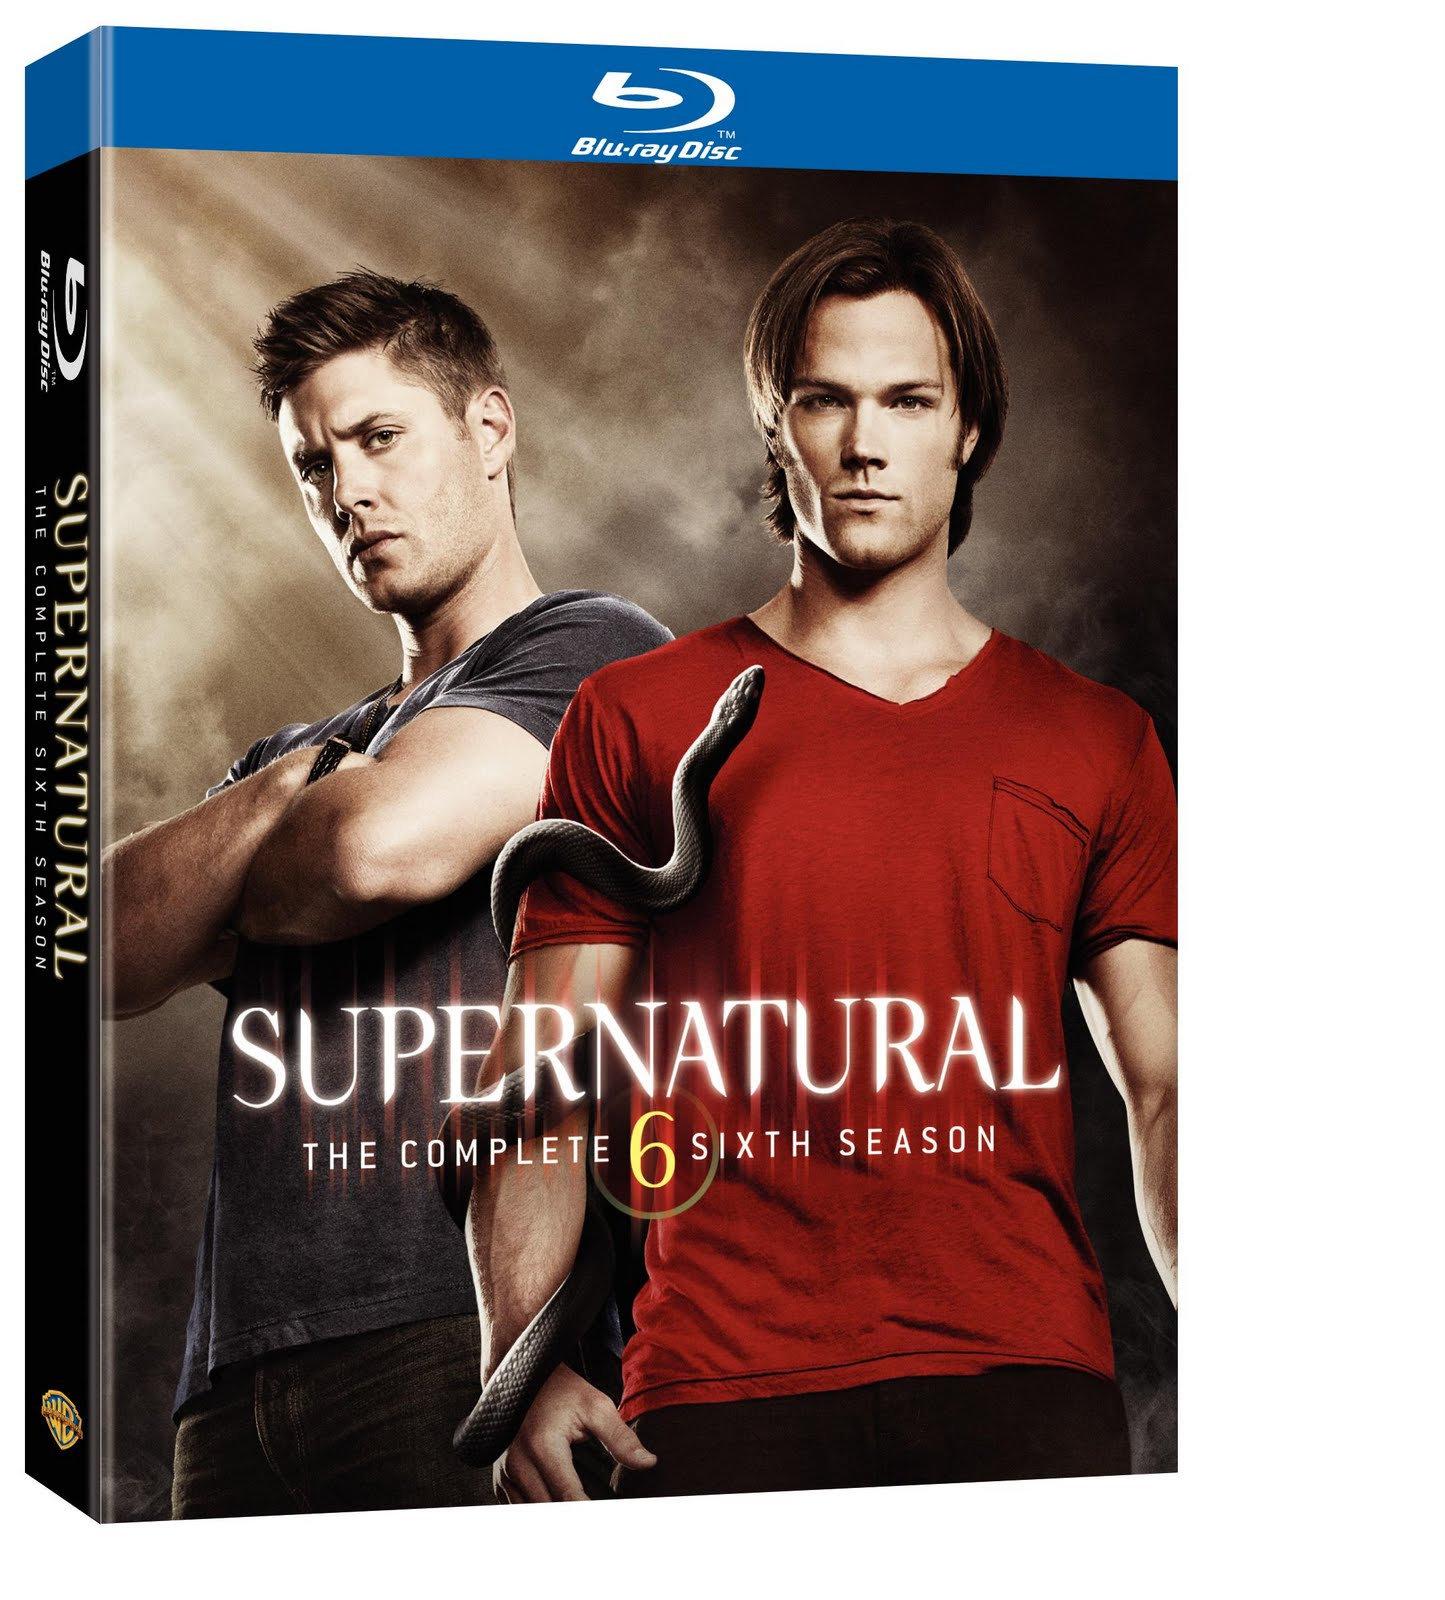 Lucifer Season 4 Release Date: DebsHere: Supernatural Season 6 On DVD-Get It Now